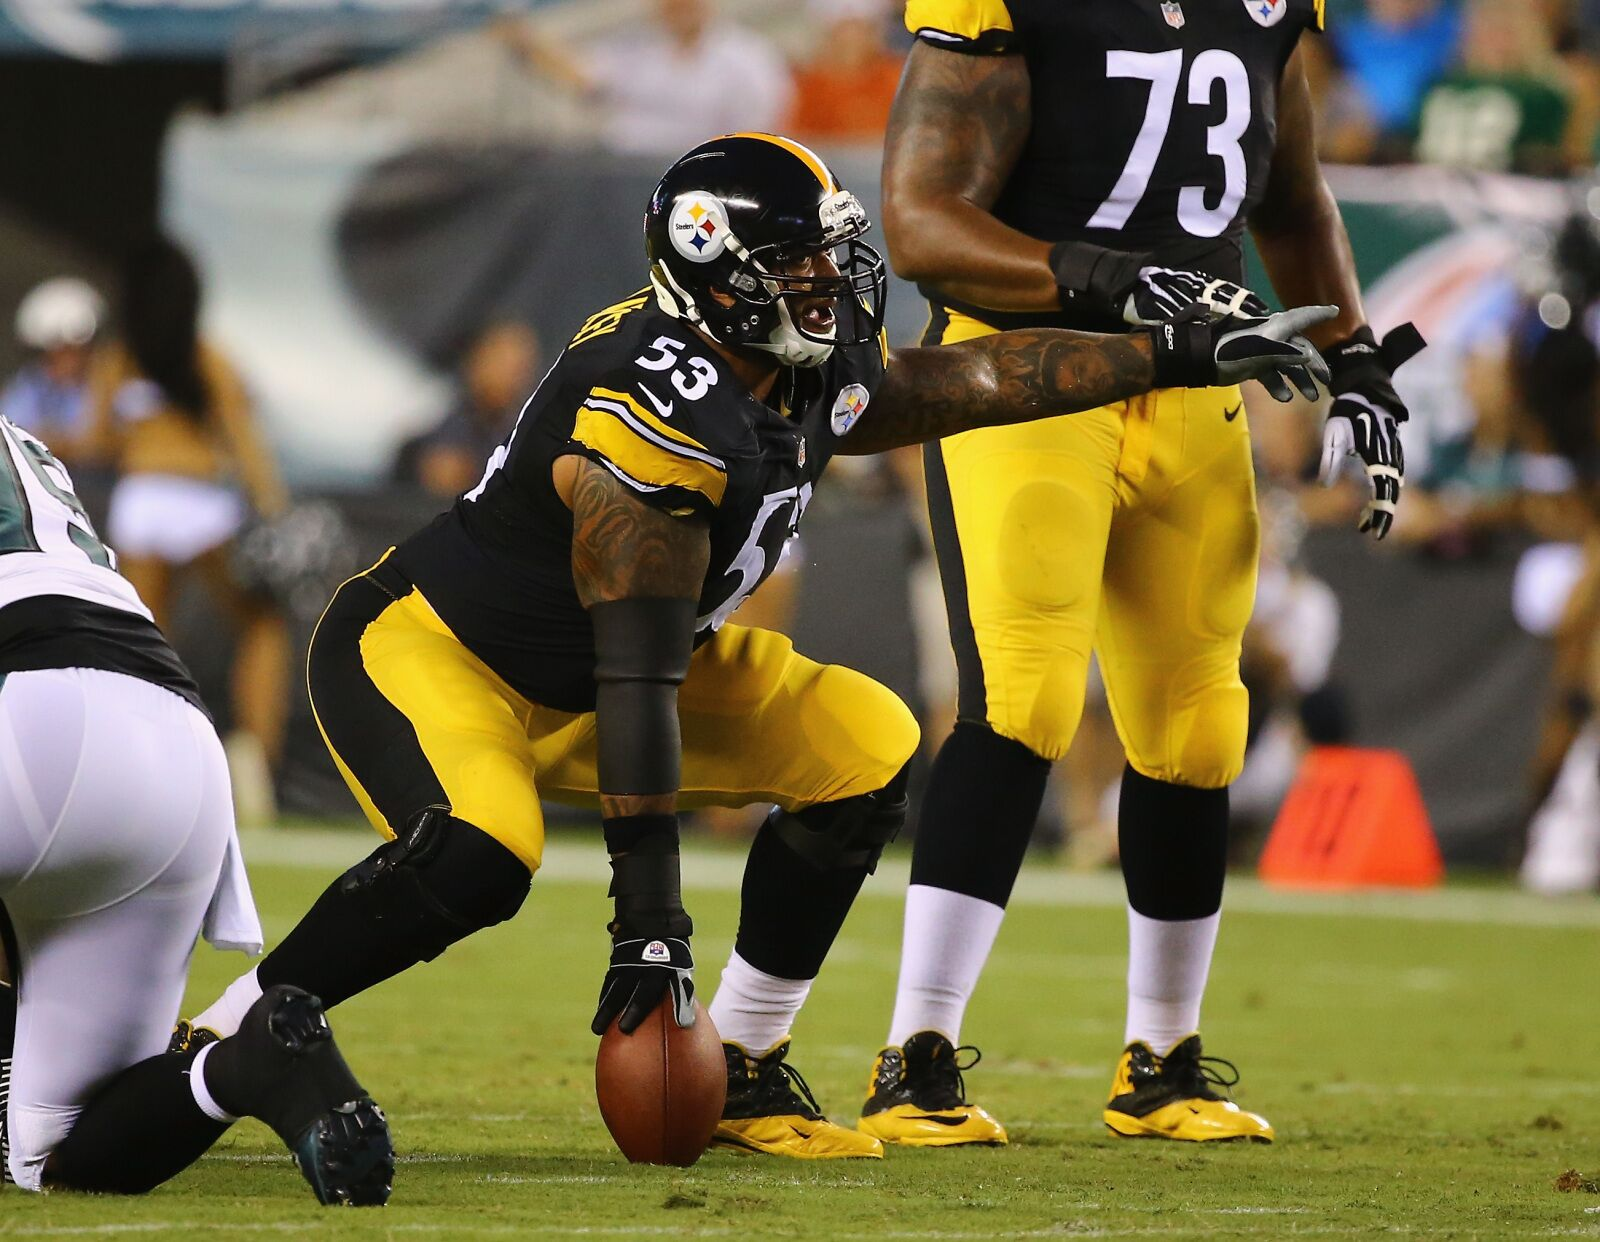 Steelers: Maurkice Pouncey's Suspension Puts NFL's Poor Judgement on Display